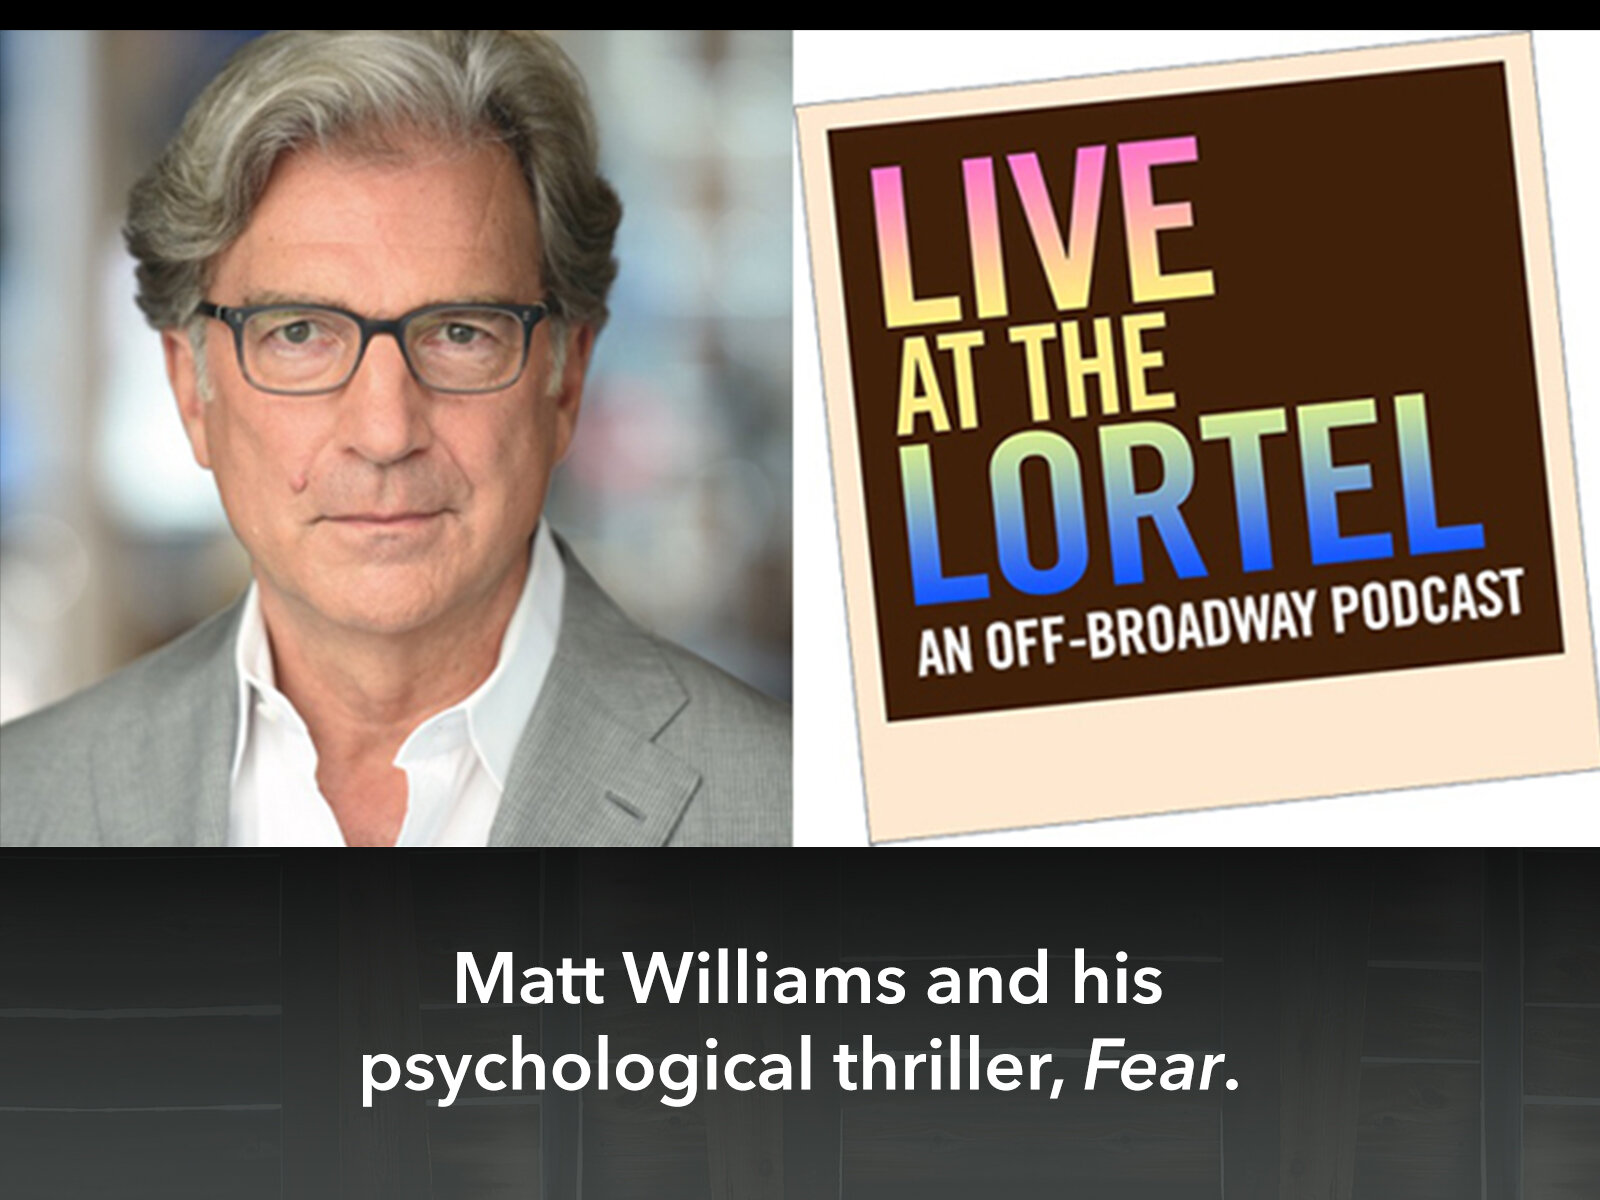 Matt Williams speaks on everything FEAR for the popular Off-Broadway podcast, Live At The Lortel. - Click to listen